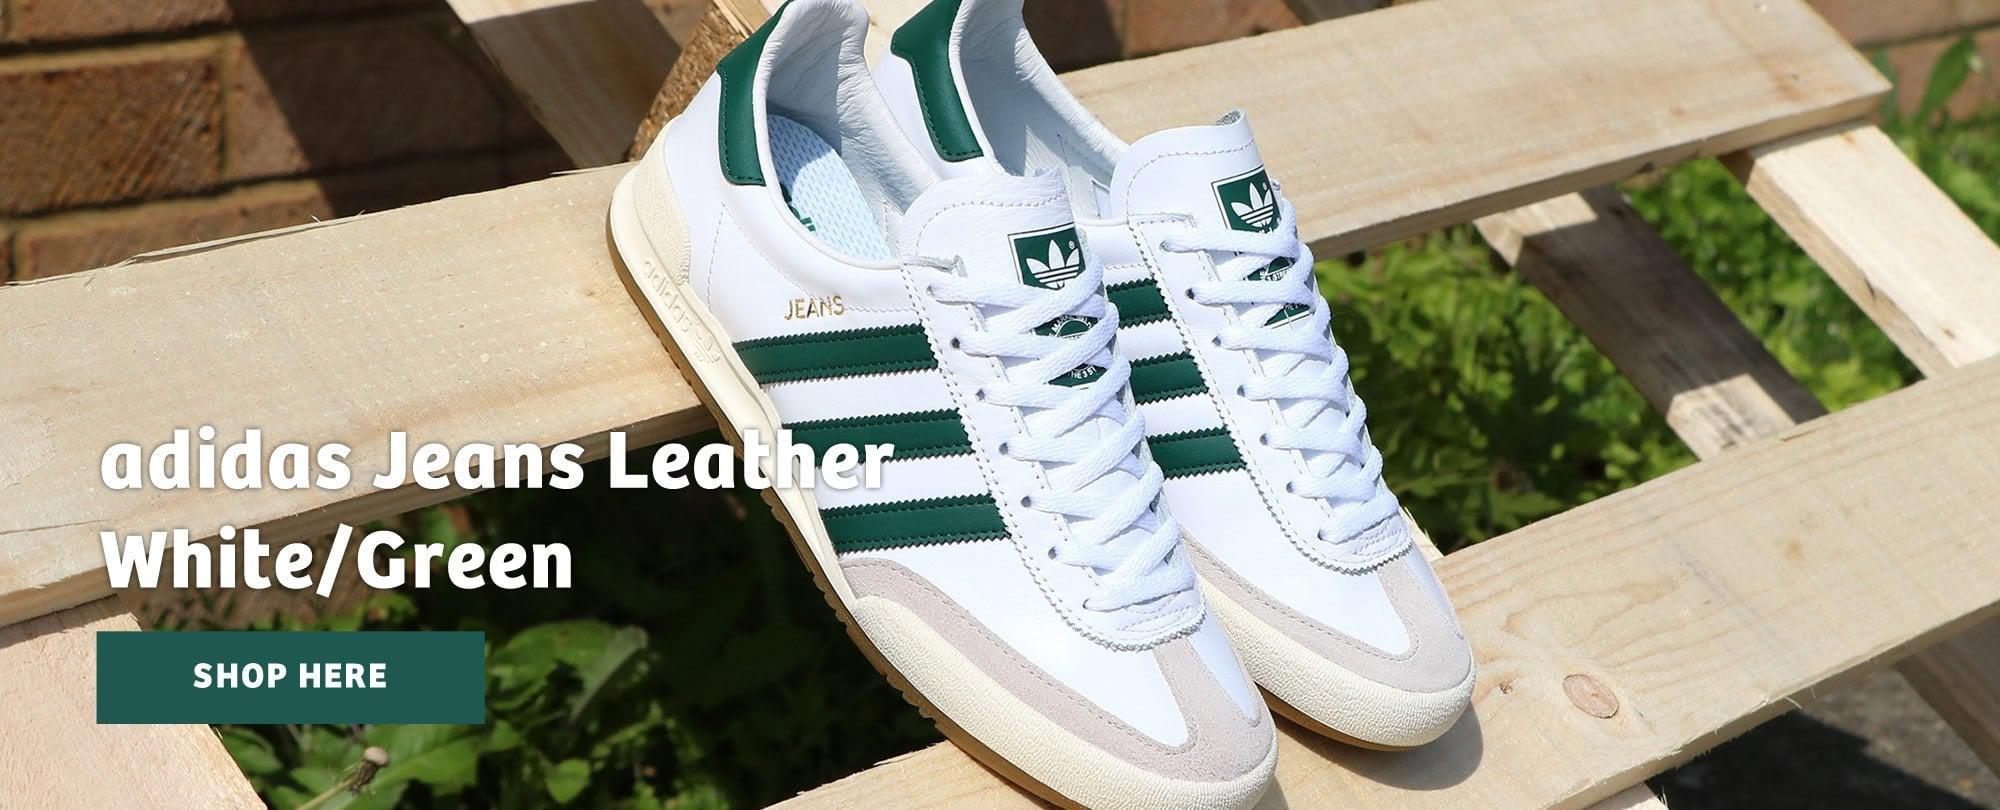 Adidas Jeans Leather White & Green